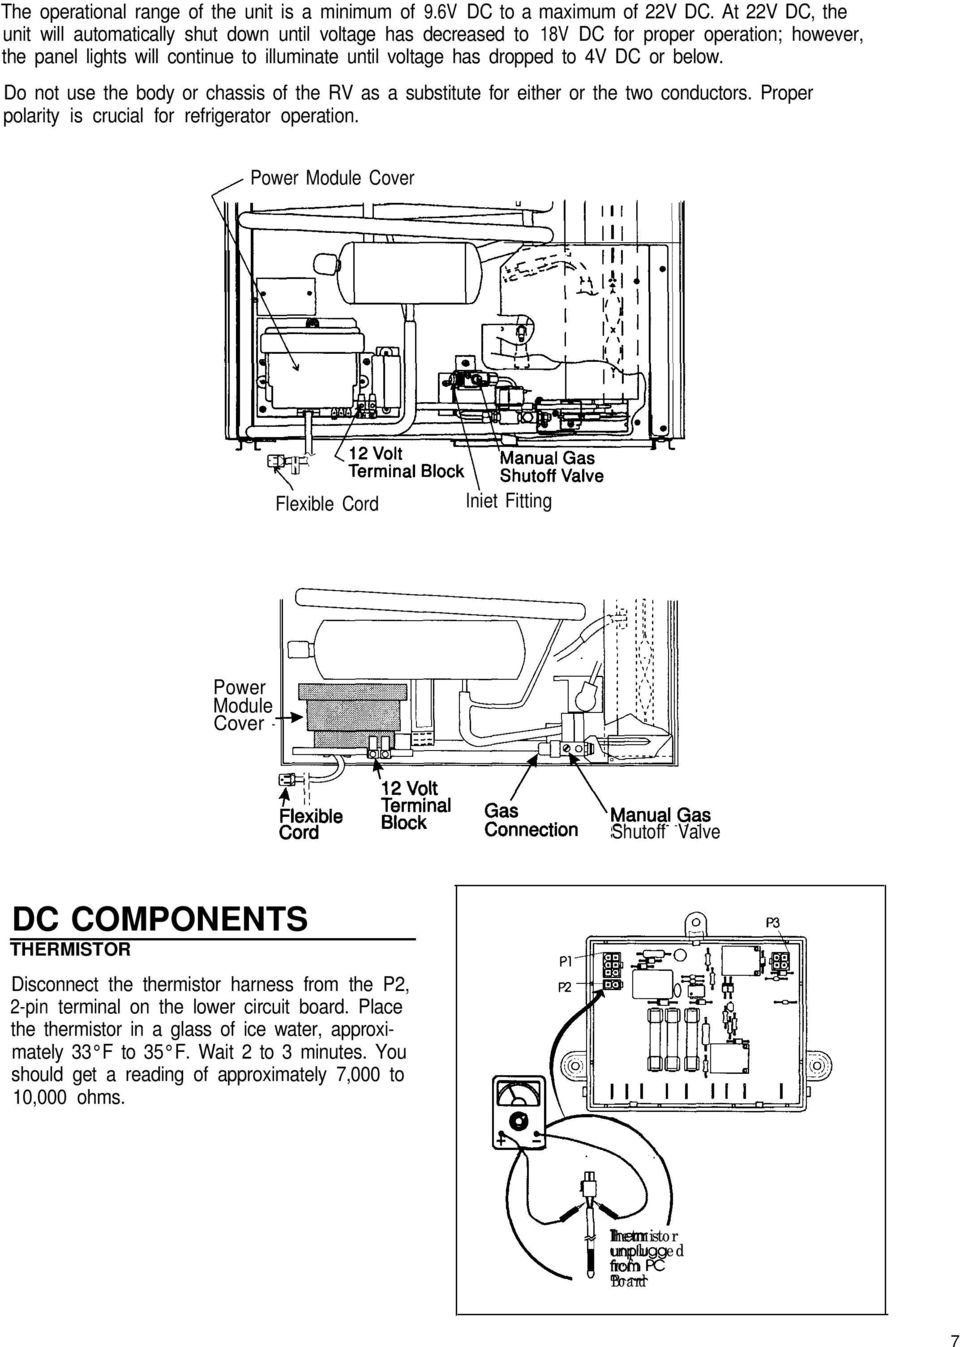 SERVICE TIPS. Dometic REFRIGERATORS. Models. OS1927 4/96 Copyright on dometic rv thermostat digital, rv ac wiring diagram, coleman furnace wiring diagram, dometic thermostat 3106995.032, coleman rv ac parts diagram, dometic air conditioner parts diagram, dometic rv air conditioner parts, air conditioner schematic wiring diagram, 3 wire thermostat diagram, 7 wire thermostat diagram, dometic rv thermostat problems, 3107541.009 wire diagram, ac thermostat diagram, dometic rv refrigerator thermostat schematic, dometic rv thermostat operation, dometic rv thermostat replacement, rv air conditioner wiring diagram, dometic air conditioner thermostat wiring, ac blower motor wiring diagram, dometic rv refrigerator parts diagram,